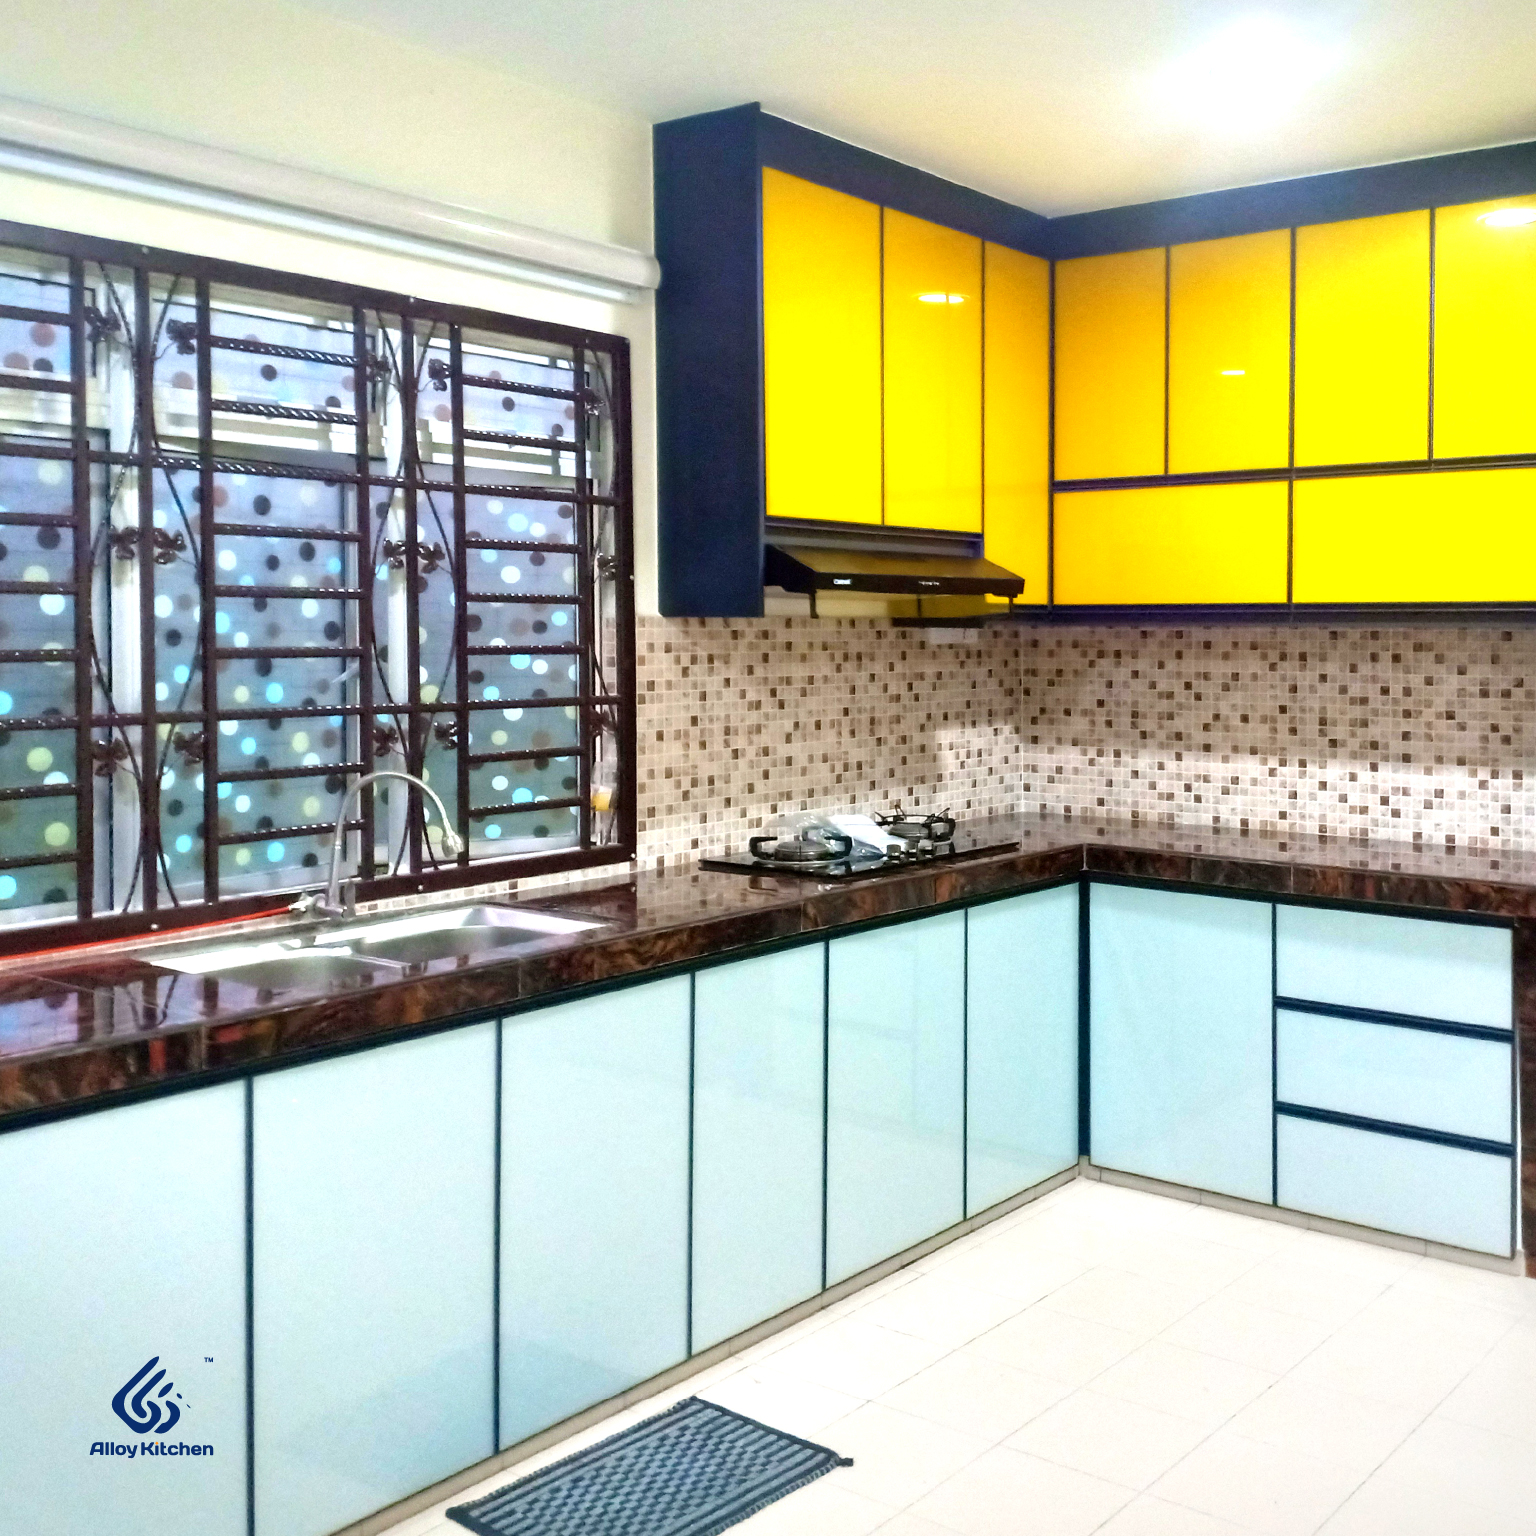 3G Series. Aluminium Kitchen Cabinet. Alloy Kitchen